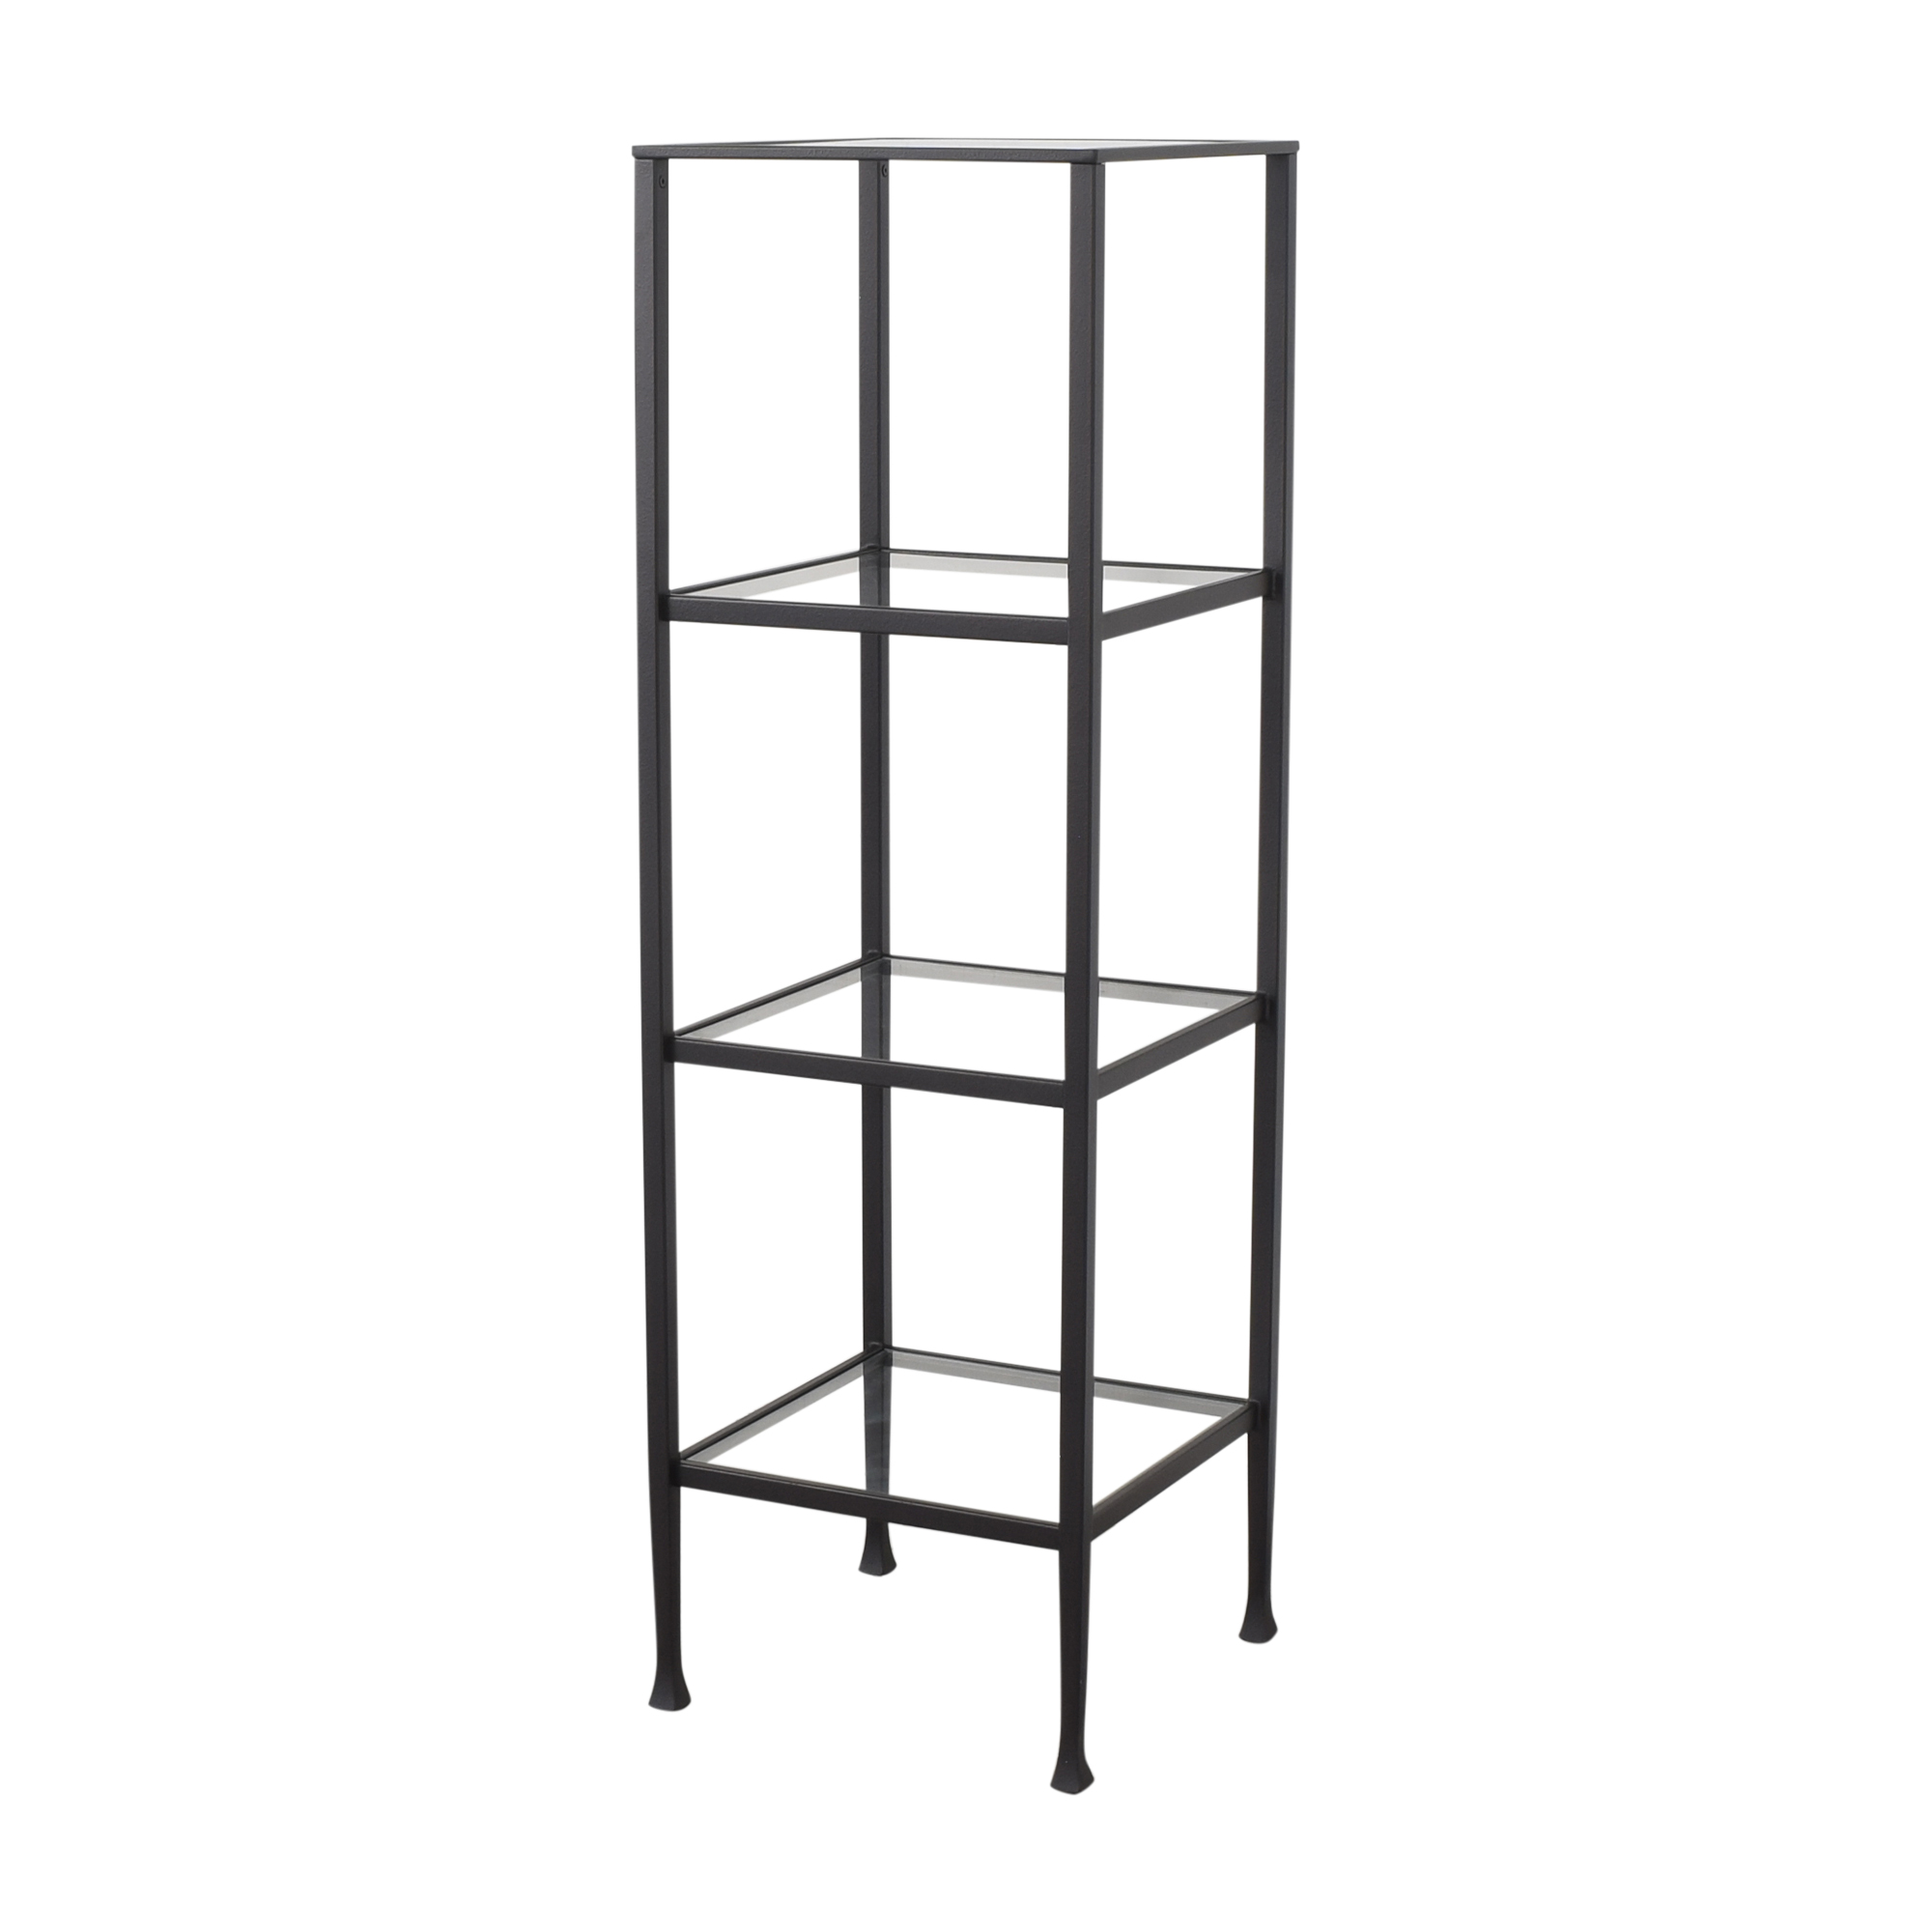 buy Pottery Barn Tanner Media Tower Pottery Barn Bookcases & Shelving